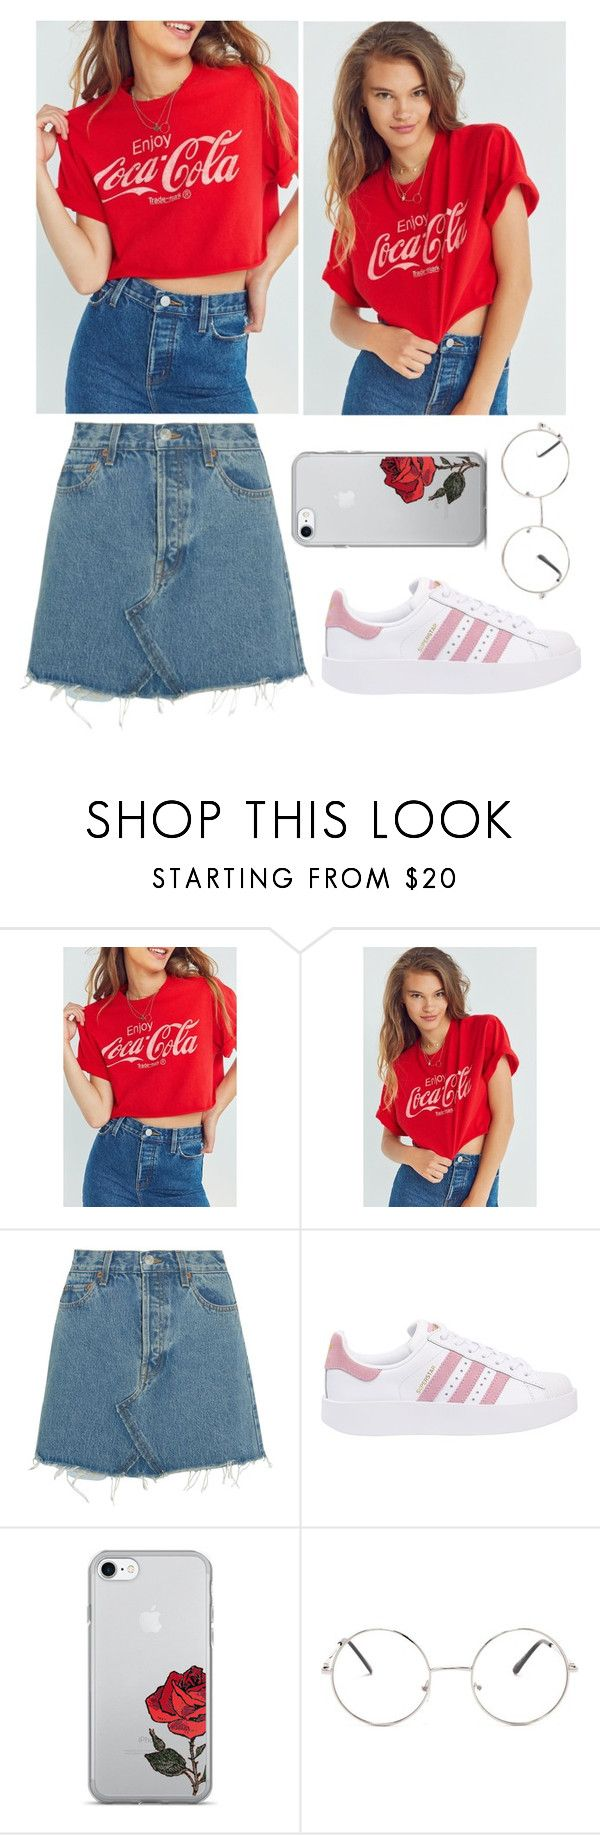 """Senza titolo #516"" by mariapiamatt ❤ liked on Polyvore featuring Junk Food Clothing, RE/DONE, adidas Originals and Nasty Gal"